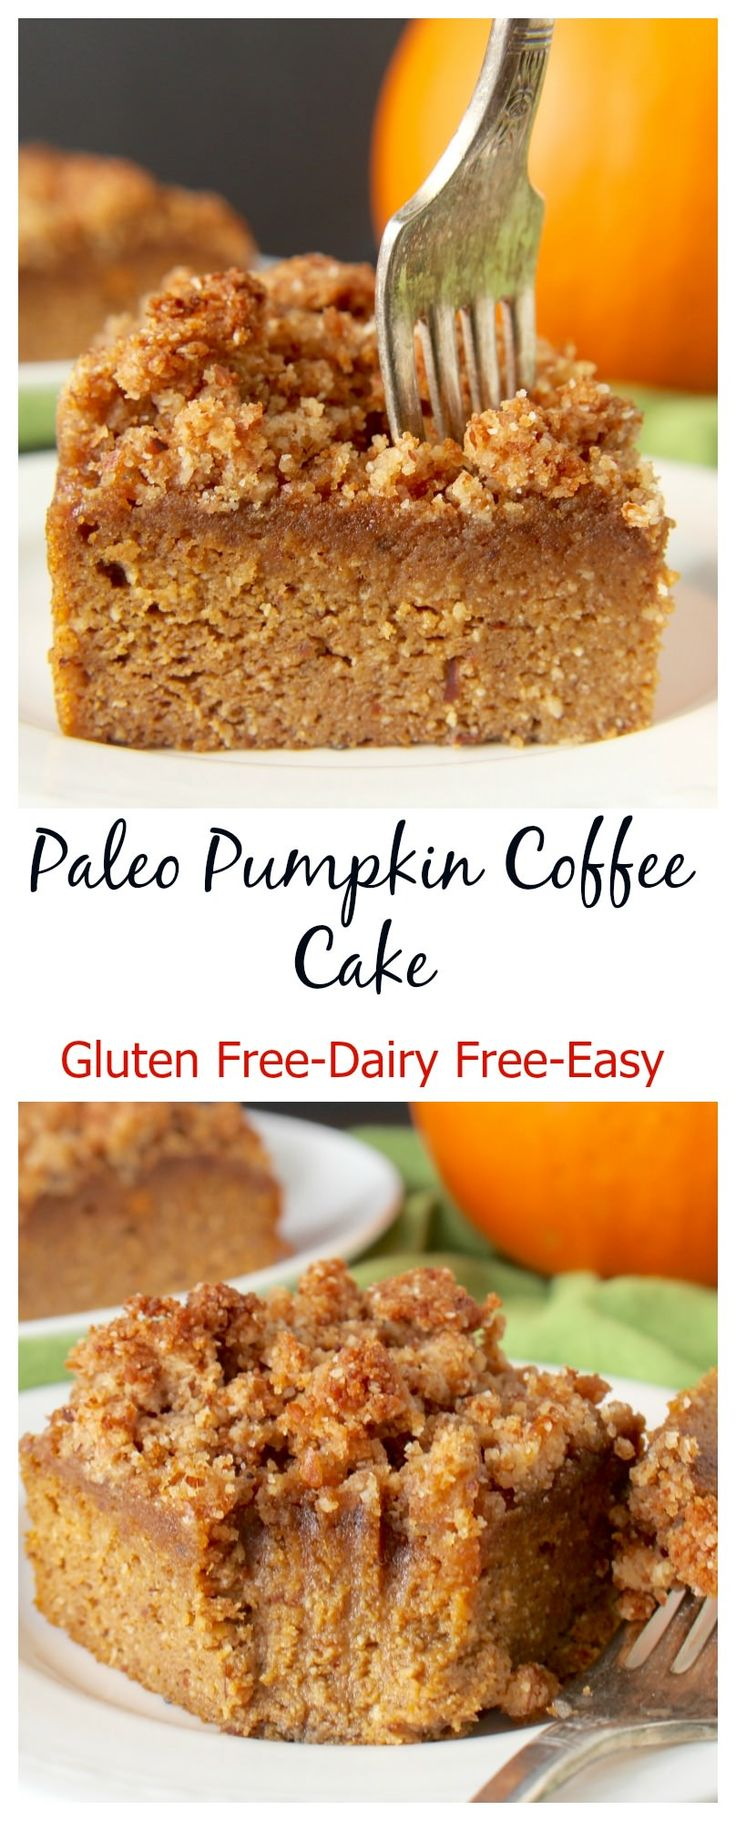 This Paleo Pumpkin Coffee Cake is the perfect fall dessert. Healthy, easy, and so delicious.